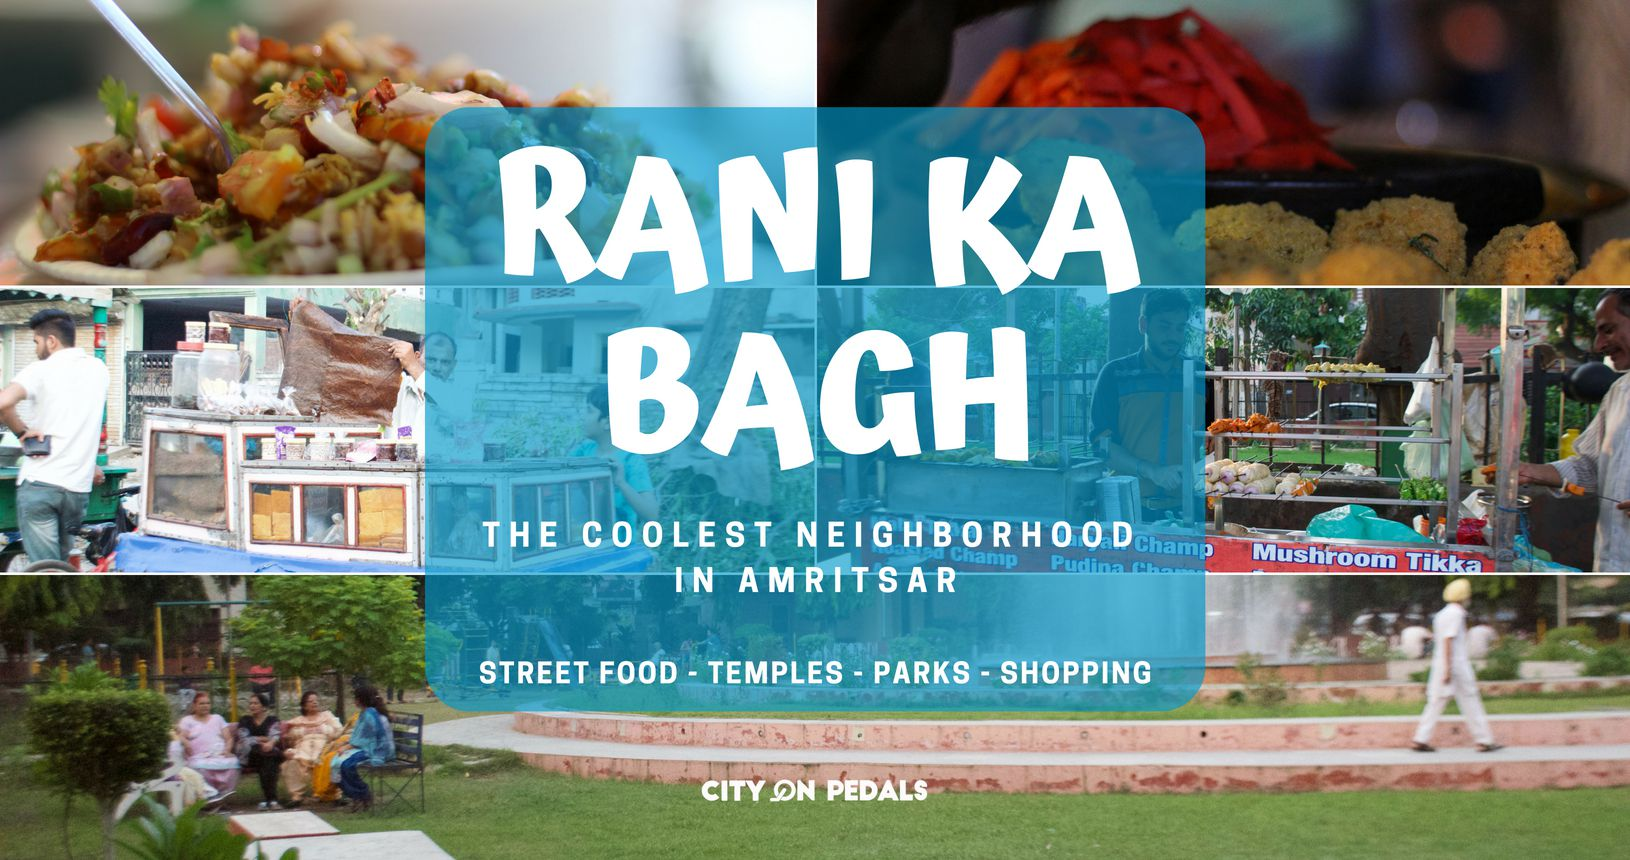 Rani Ka Bagh - The Coolest Neighborhood in Amritsar